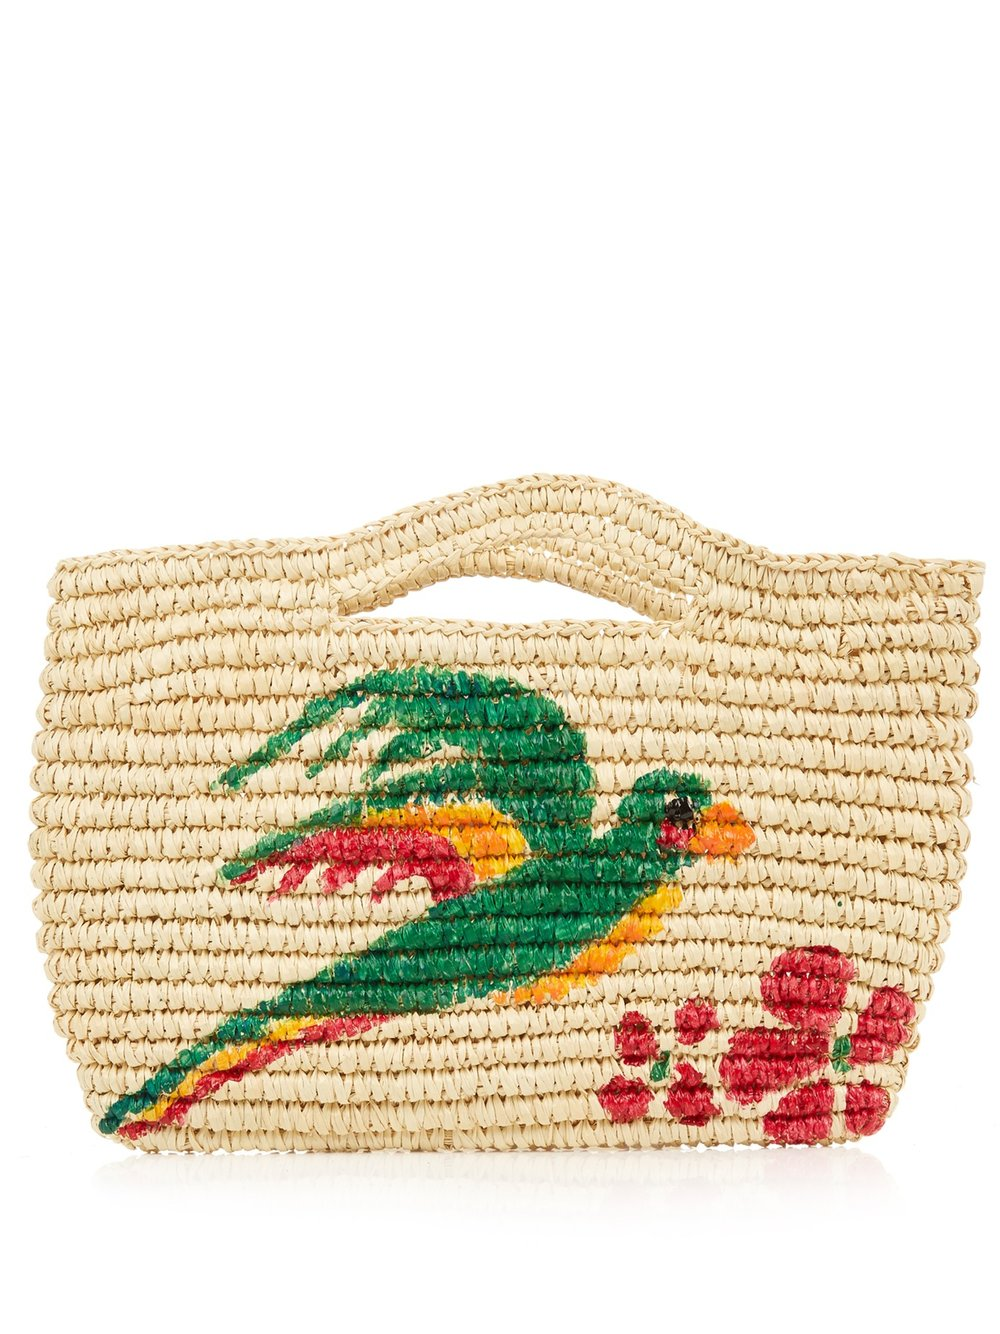 SENSI STUDIO 'MACAW' MINI STRAW BAG